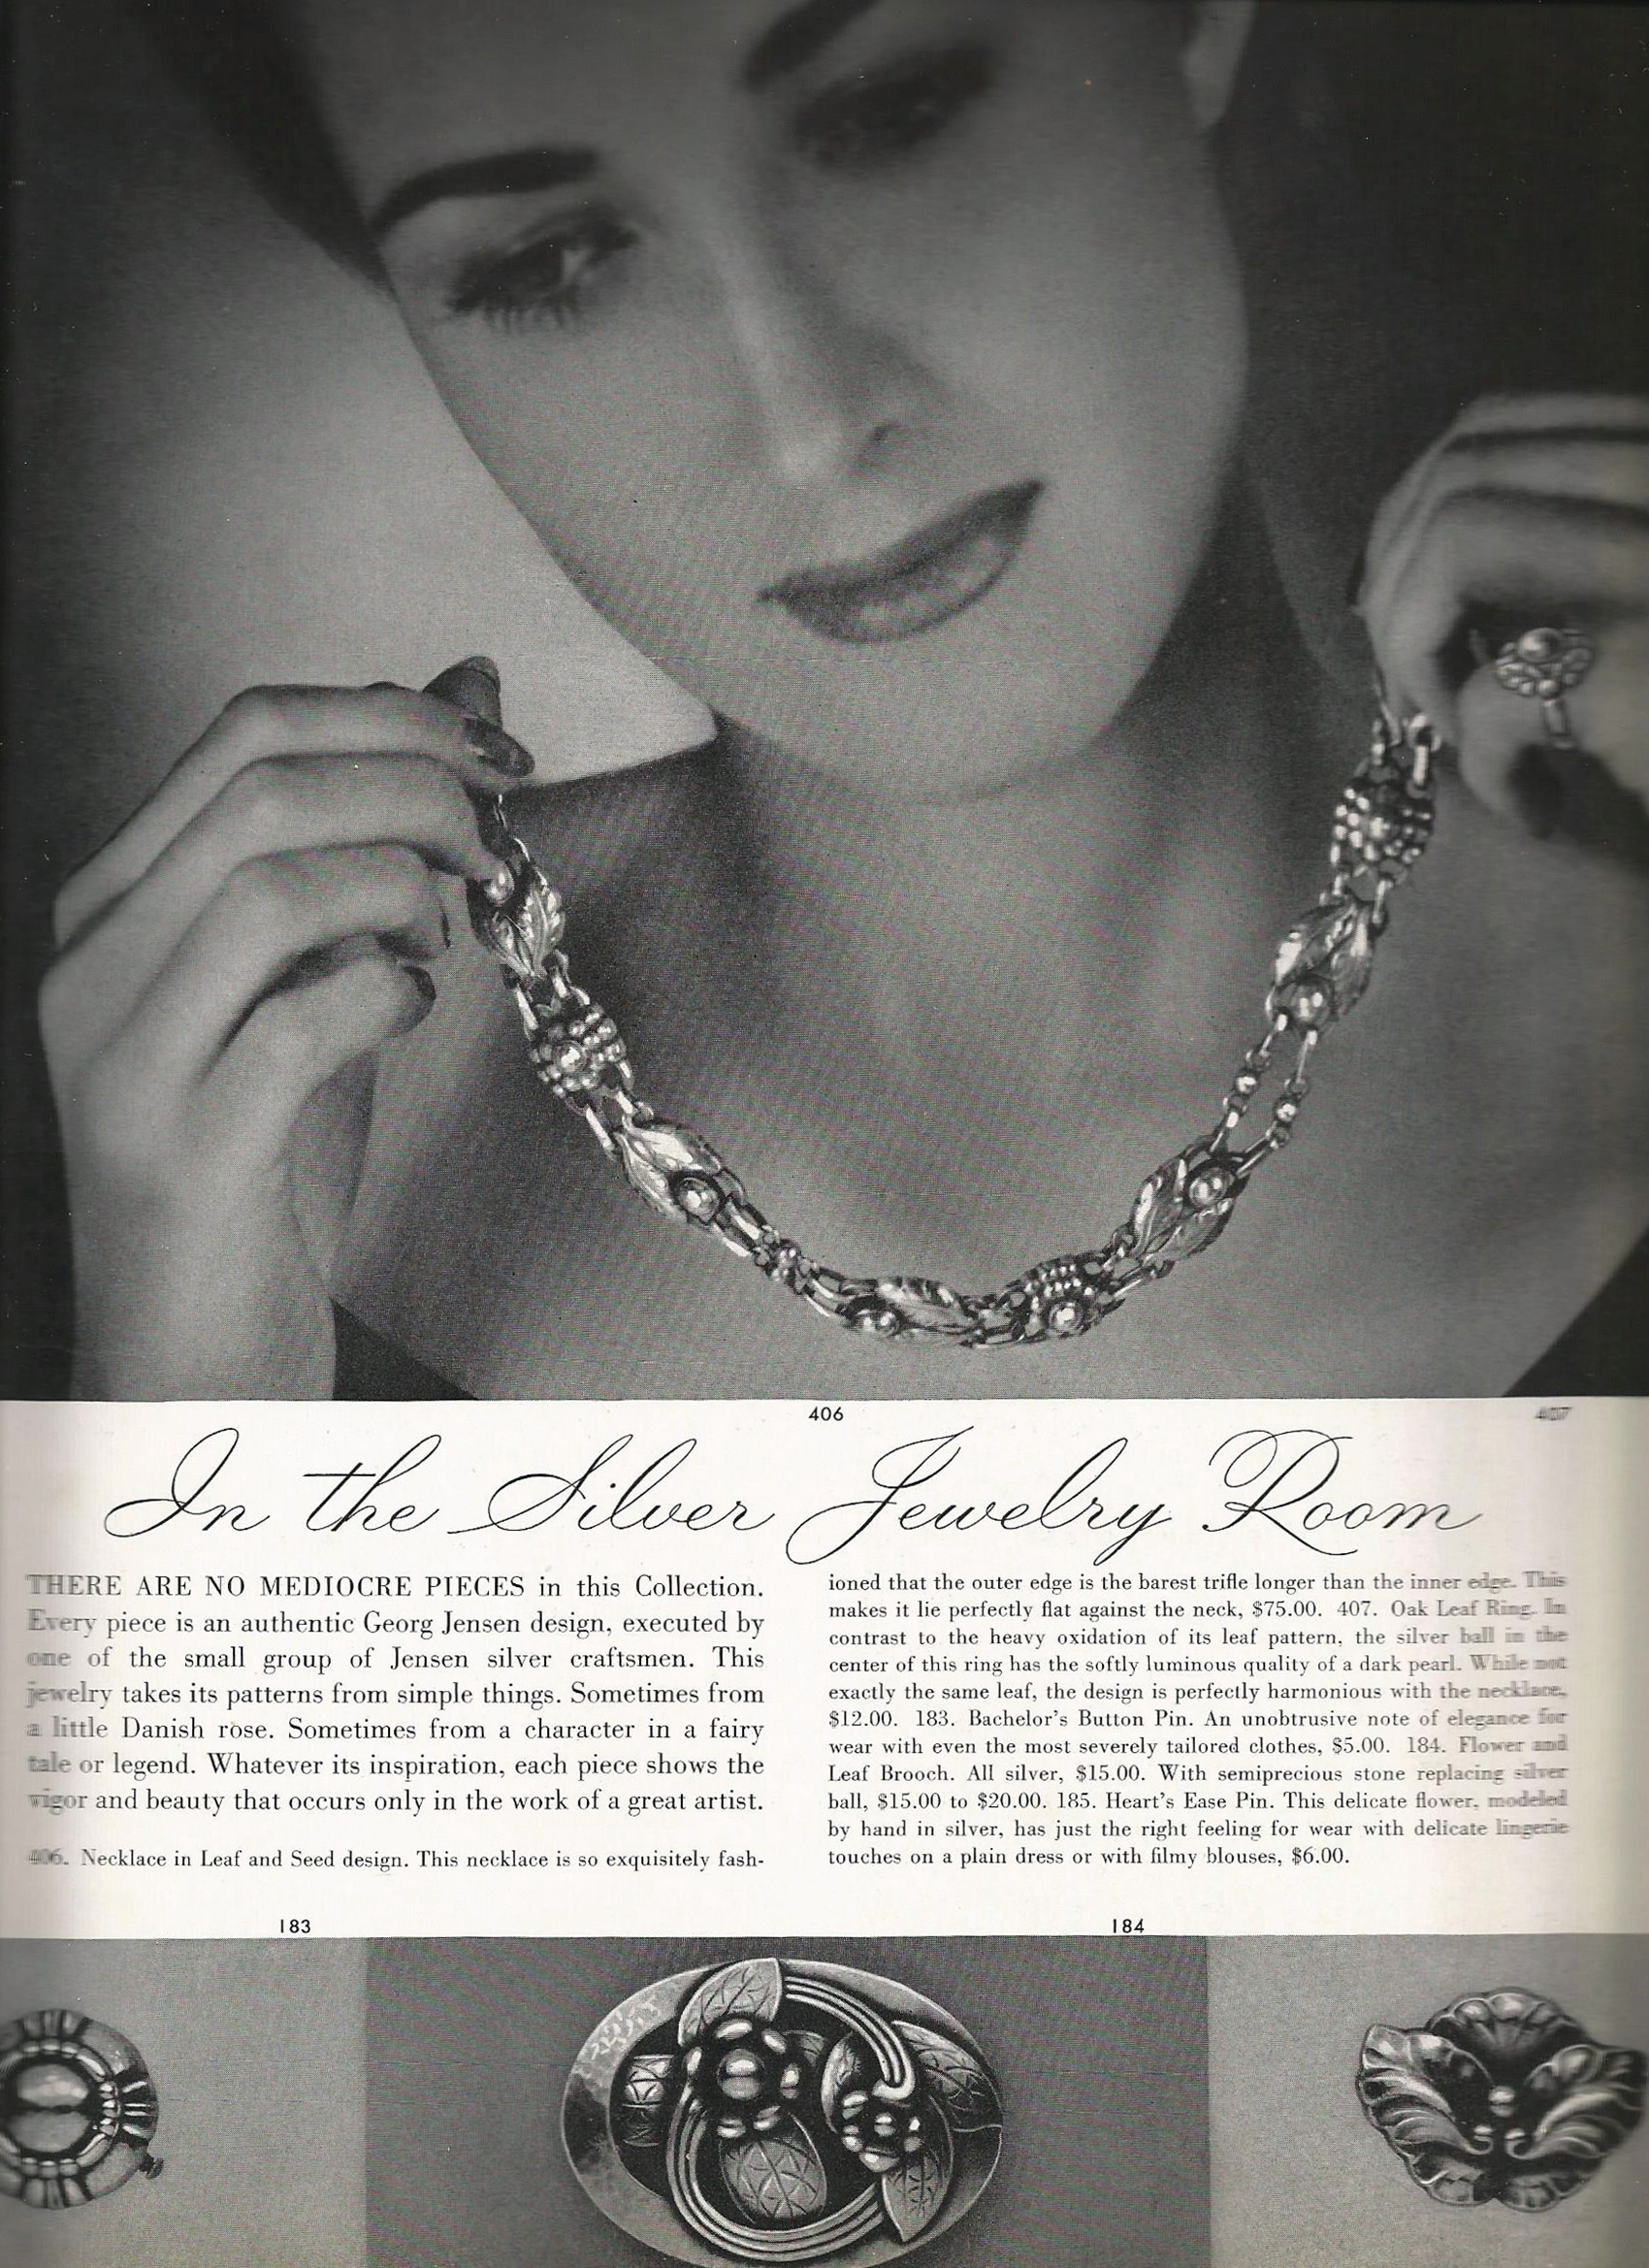 """Moving forward into the catalog, The next section of appeal is the jewelry section.    The text on the page is as follows:   """"In the Silver Jewelry Room  There are no mediocre piece in this Collection. Every piece is an authentic Georg Jensen design, executed by one of the small group of Jensen craftsmen. This jewelry takes its patterns from simple things. Sometimes from a little Danish rose. Sometimes from a character in a fairy tale or legend. Whatever its inspiration, each piece shows the vigor and beauty that occurs only in the work of a great artist.  406. Necklace in Leaf and Seed design. This necklace is so exquisitely fashioned that the outer edge is the barest trifle longer than the inner edge. This makes it lie perfectly flat against the neck, $75.00. 407. Oak Leaf Ring. In contrast to the heavy oxidation of its leaf pattern, the silver ball in the center of this ring has the softly luminous quality of a dark pearl. While not exactly the same leaf, the design is perfectly harmonious with the necklace, $12.00. 183. Bachelor's Button Pin. An unobtrusive note of elegance for wear with even the most severely tailored clothes, $5.00. 184. Flower and Leaf Brooch. All silver, $15.00. With semiprecious stone replacing silver ball, $!5.00 to $20.00. 185. Heart's Ease Pin. This delicate flower, modeled by hand in silver, has just the right feeling for wear with the delicate lingerie touches on a plain dress or with flimy blouses, $6.00."""""""